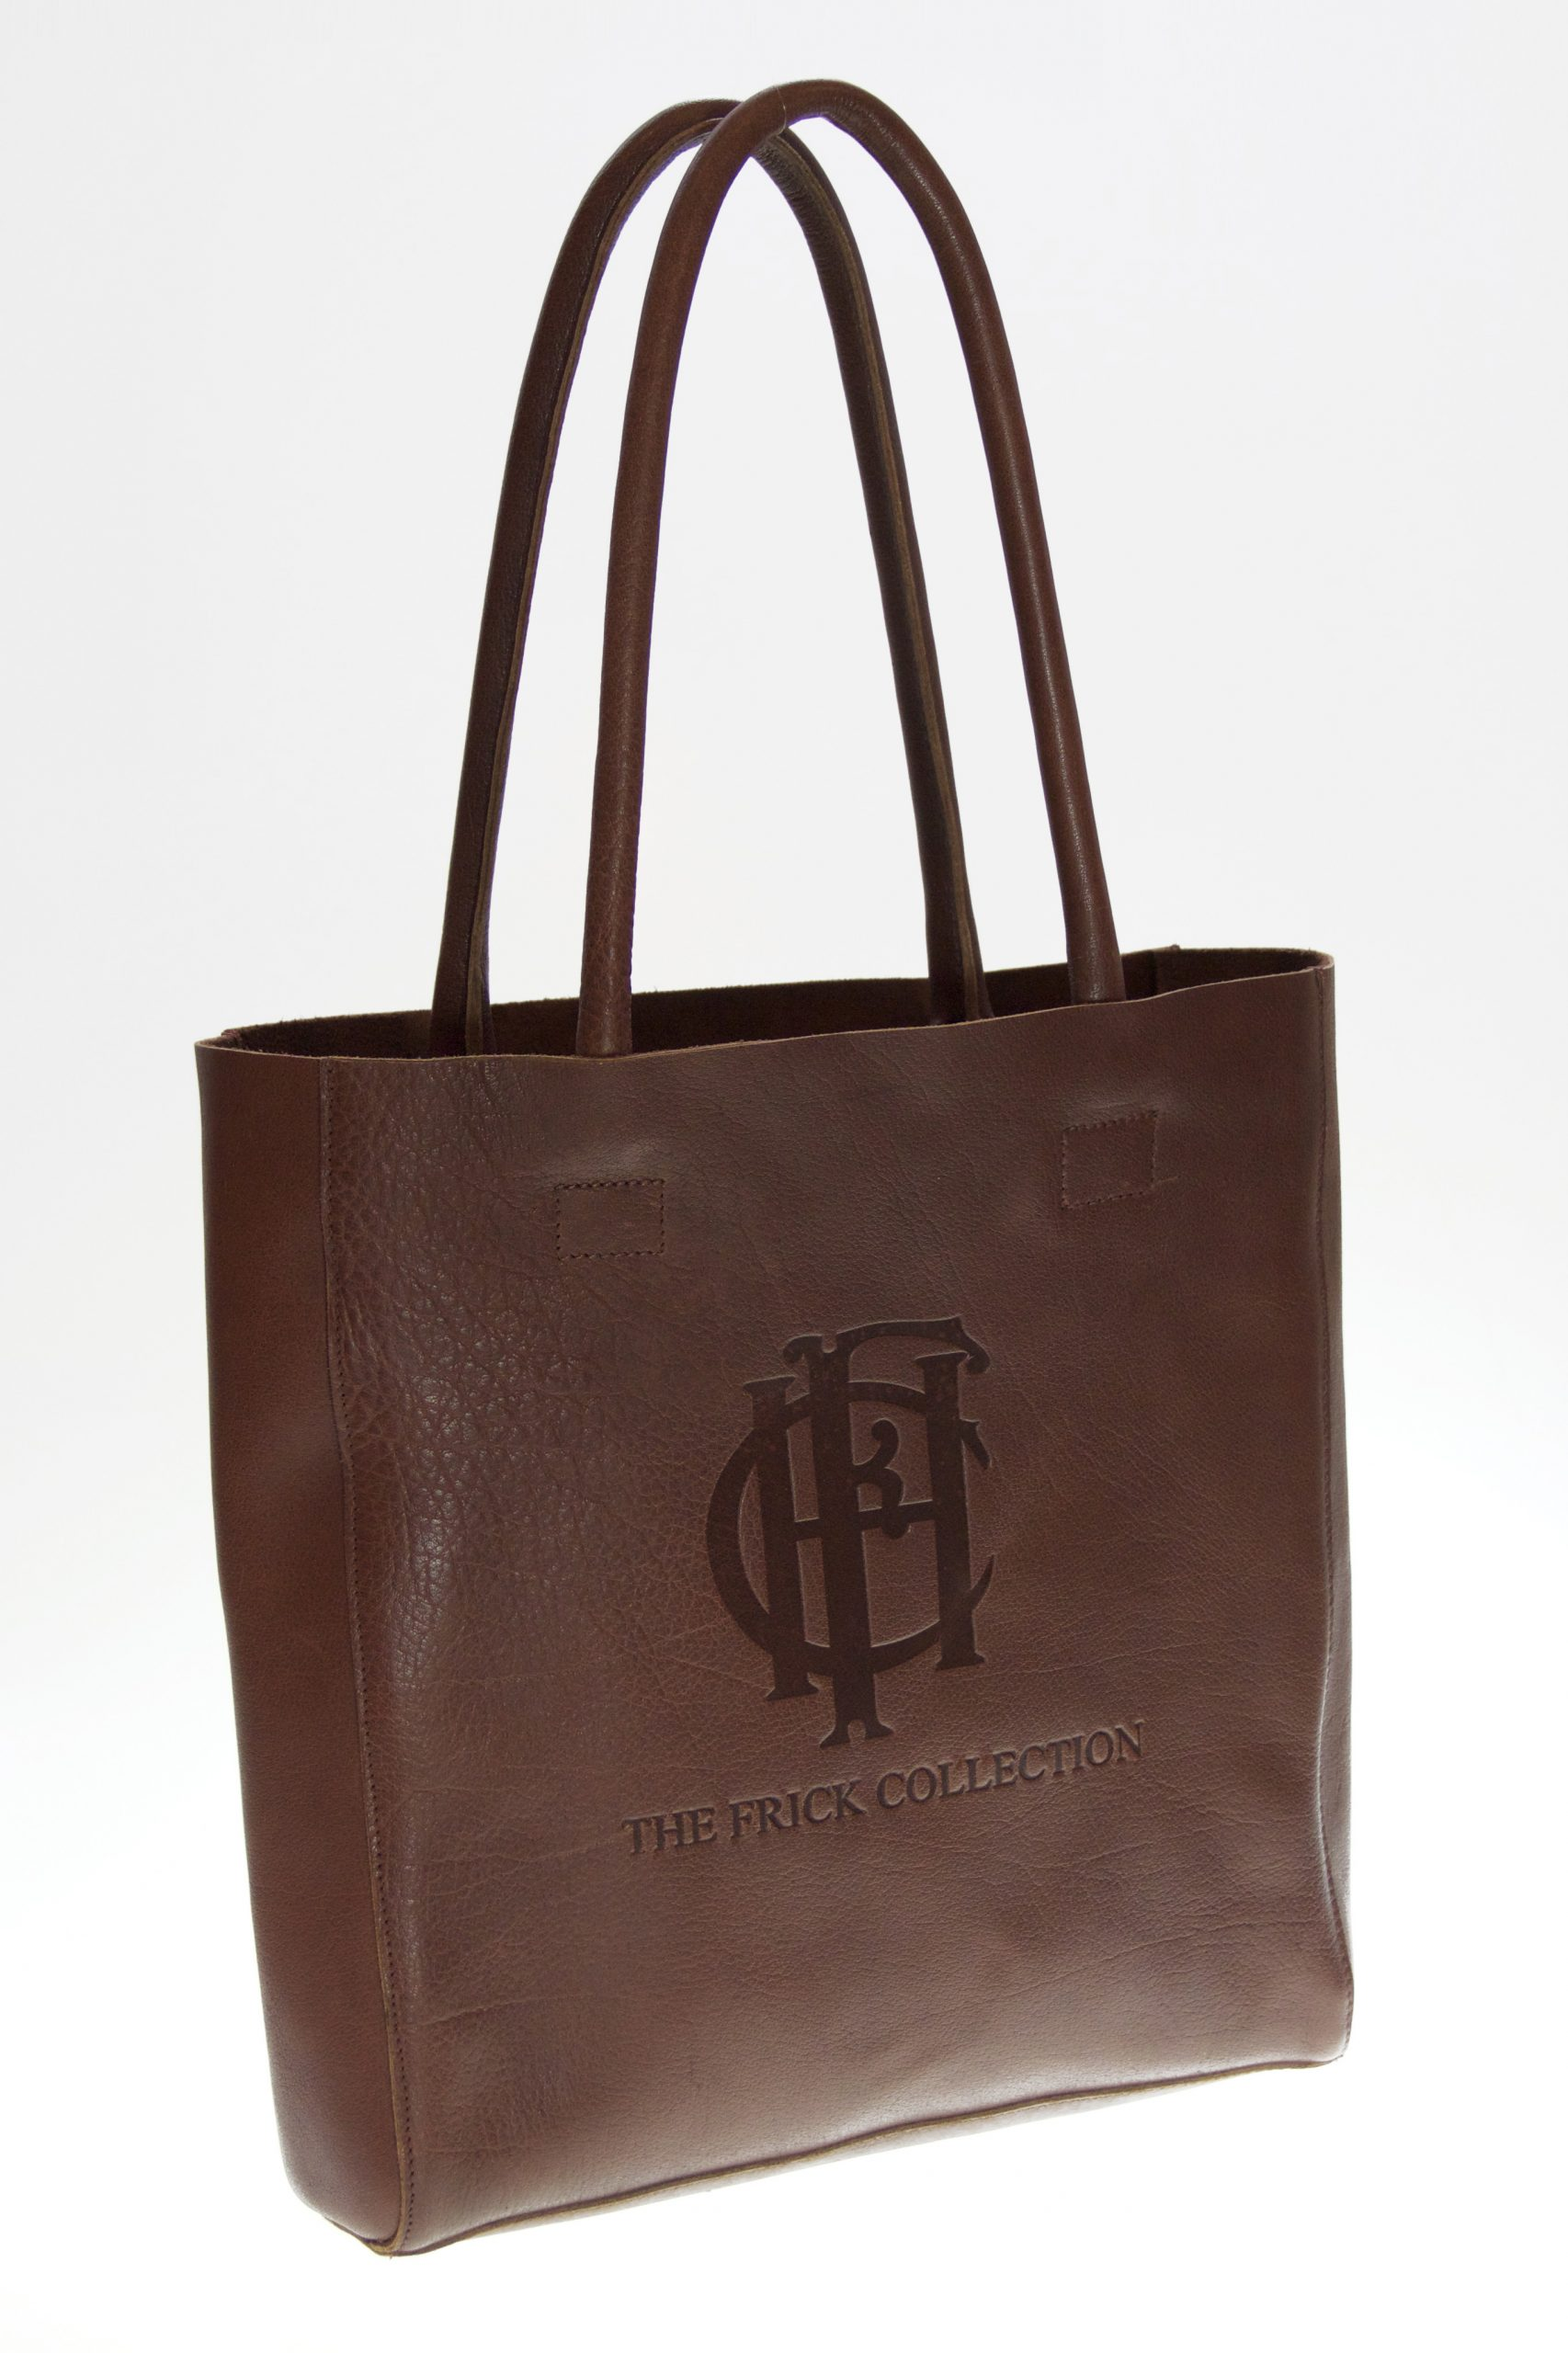 Custom Leather Totes